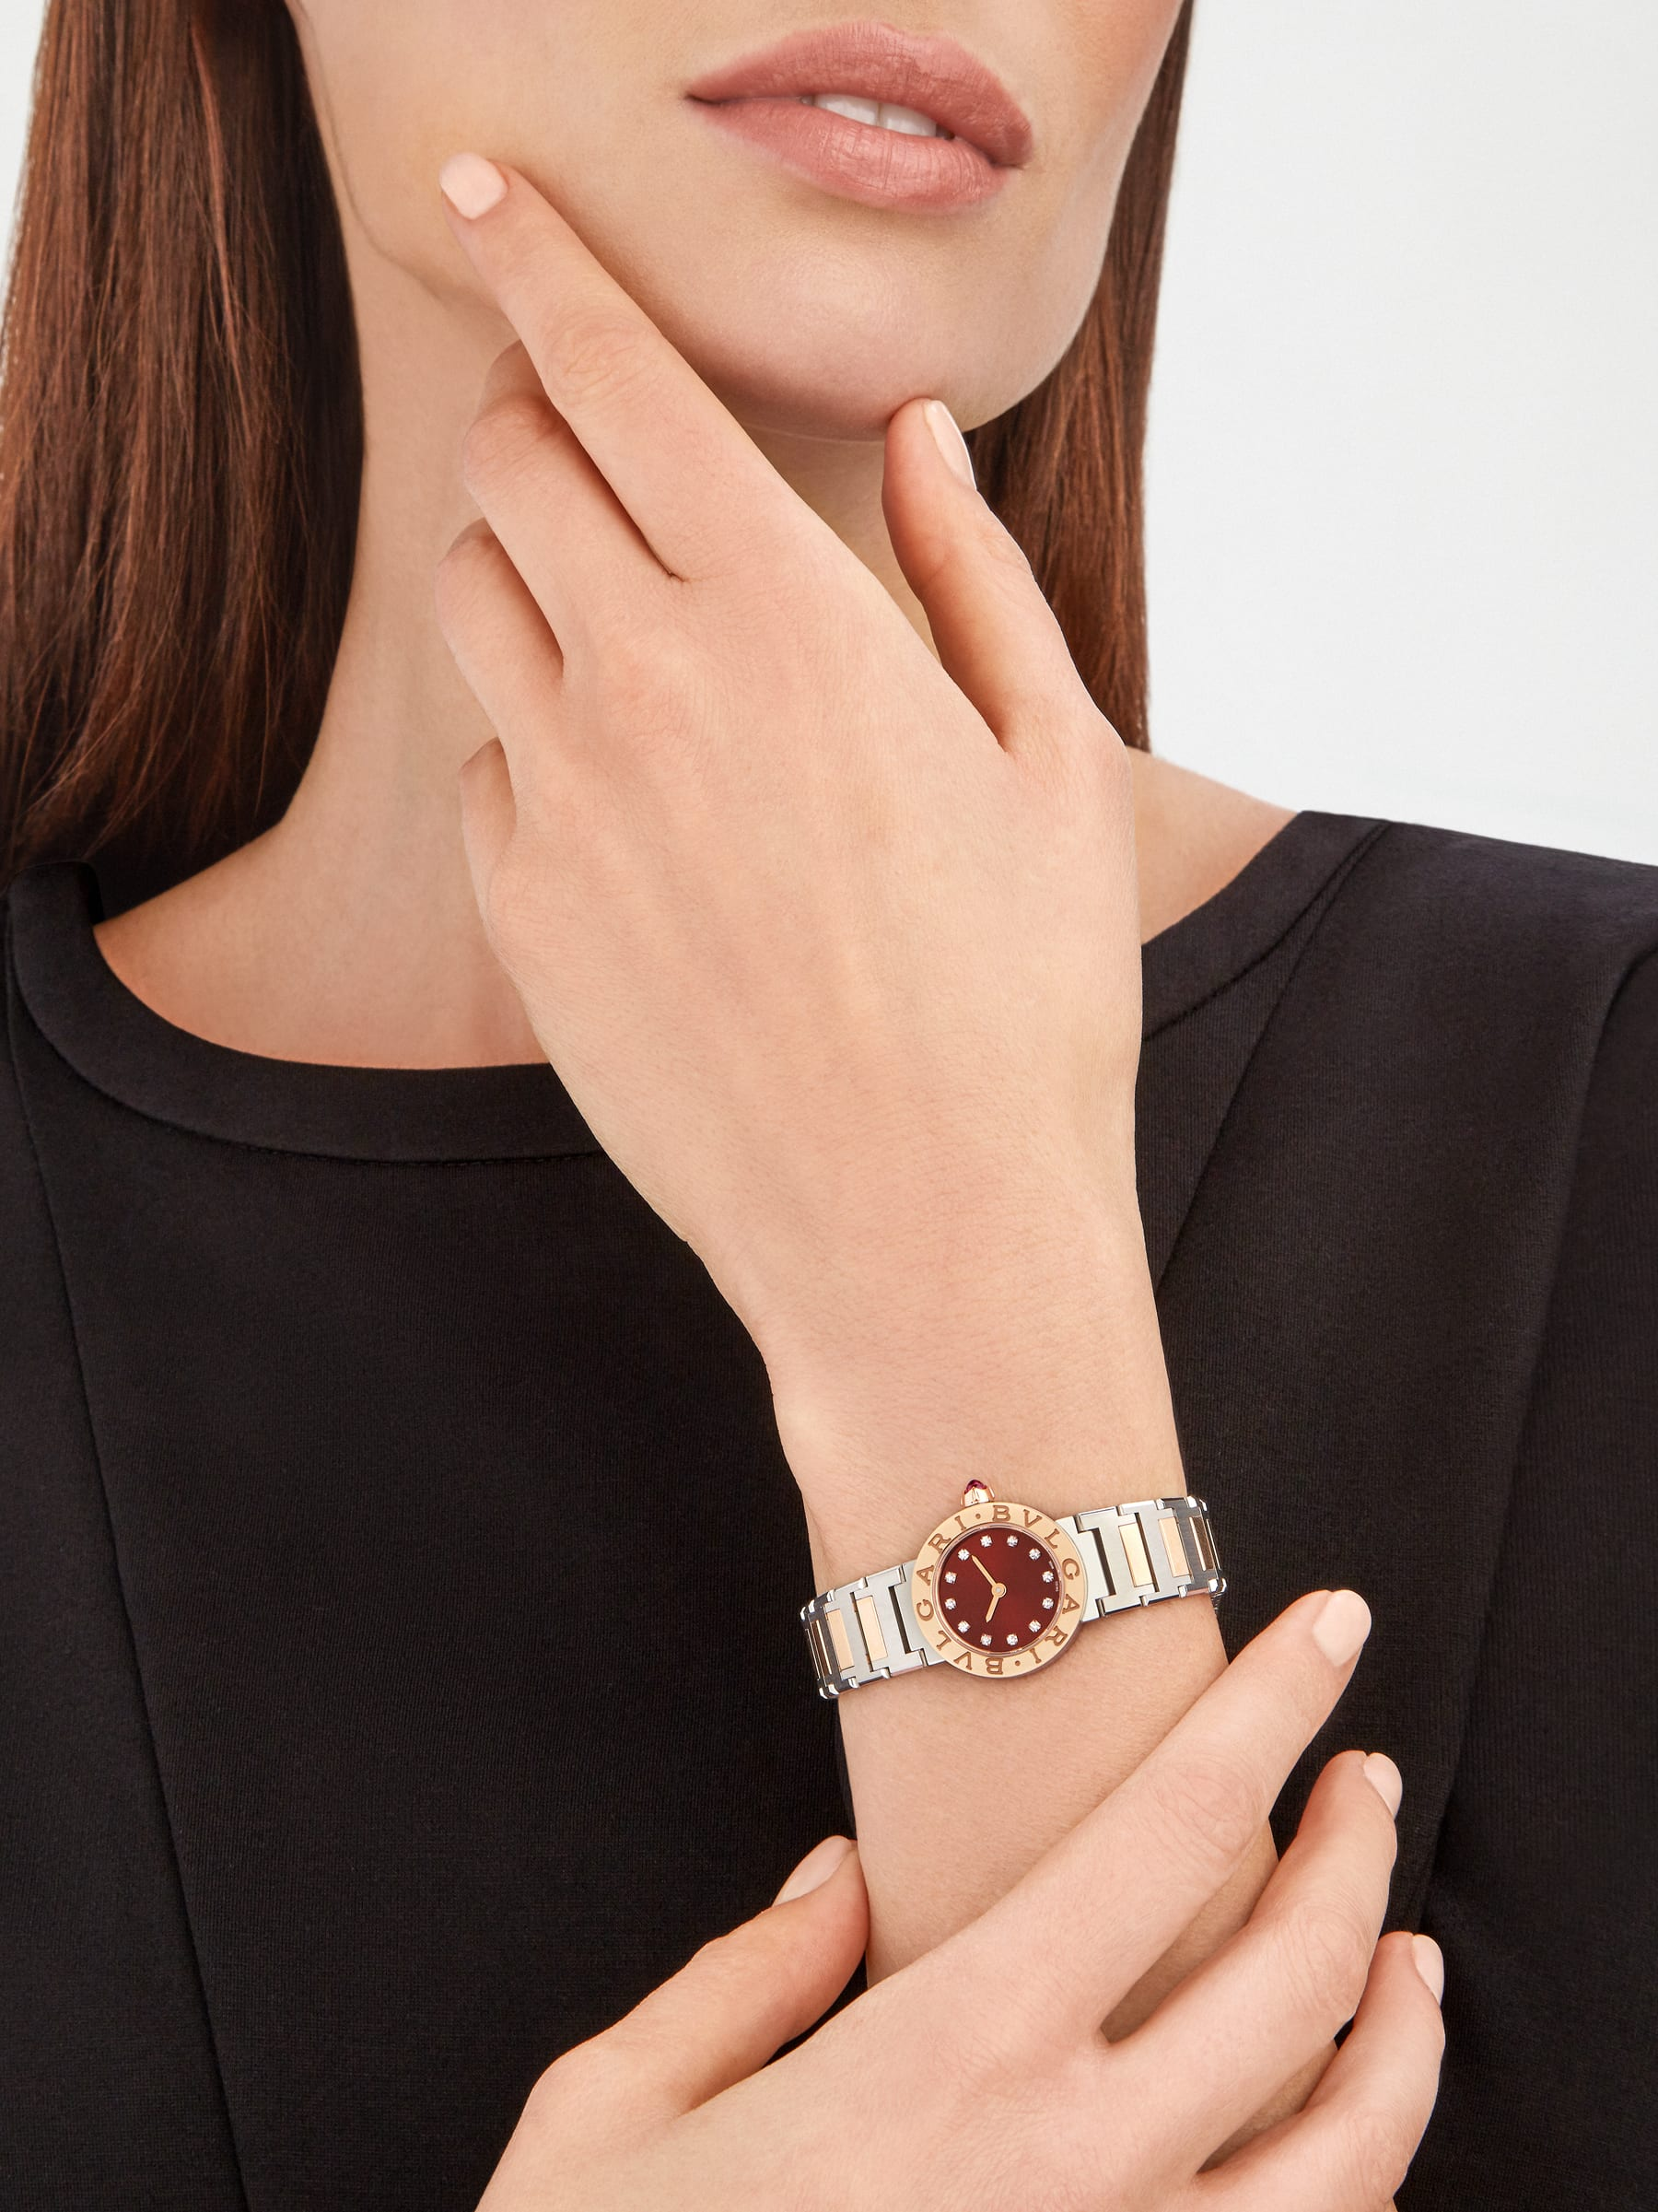 BVLGARI BVLGARI watch in 18 kt rose gold and stainless steel case and bracelet, 18 kt rose gold bezel engraved with double logo, brown satiné soleil lacquered dial and diamond indexes 103218 image 4